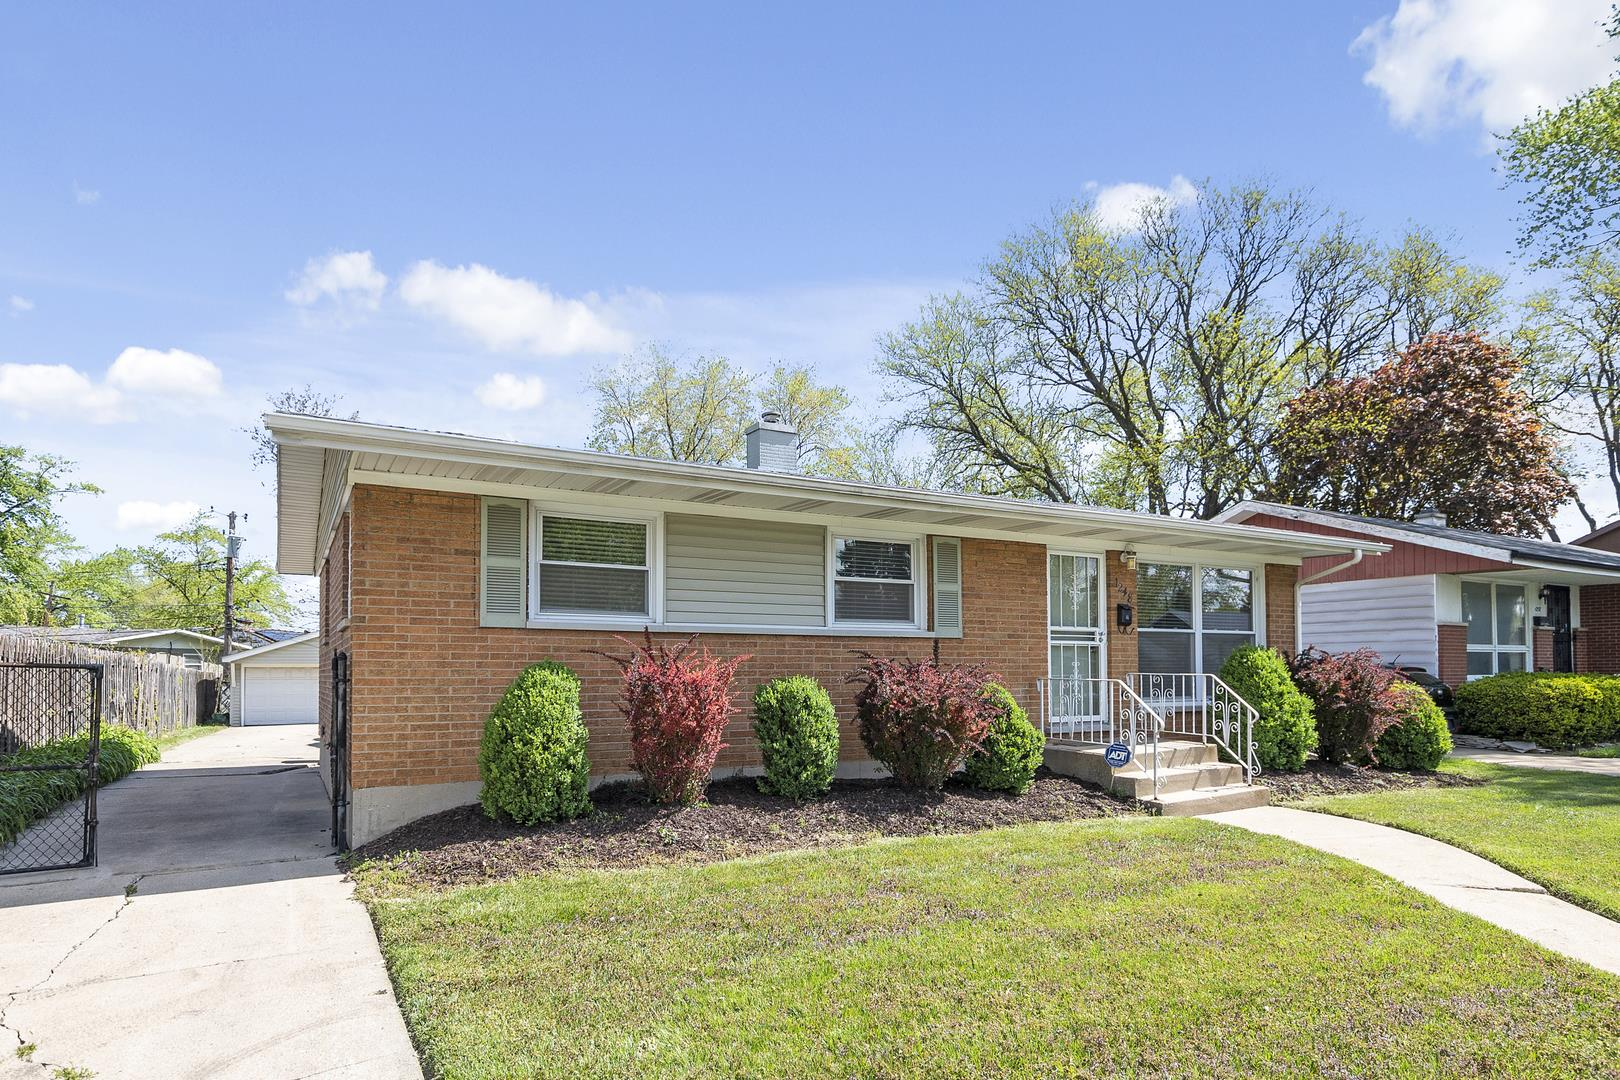 1248 E 156th Street, South Holland, IL 60473 - #: 11083259